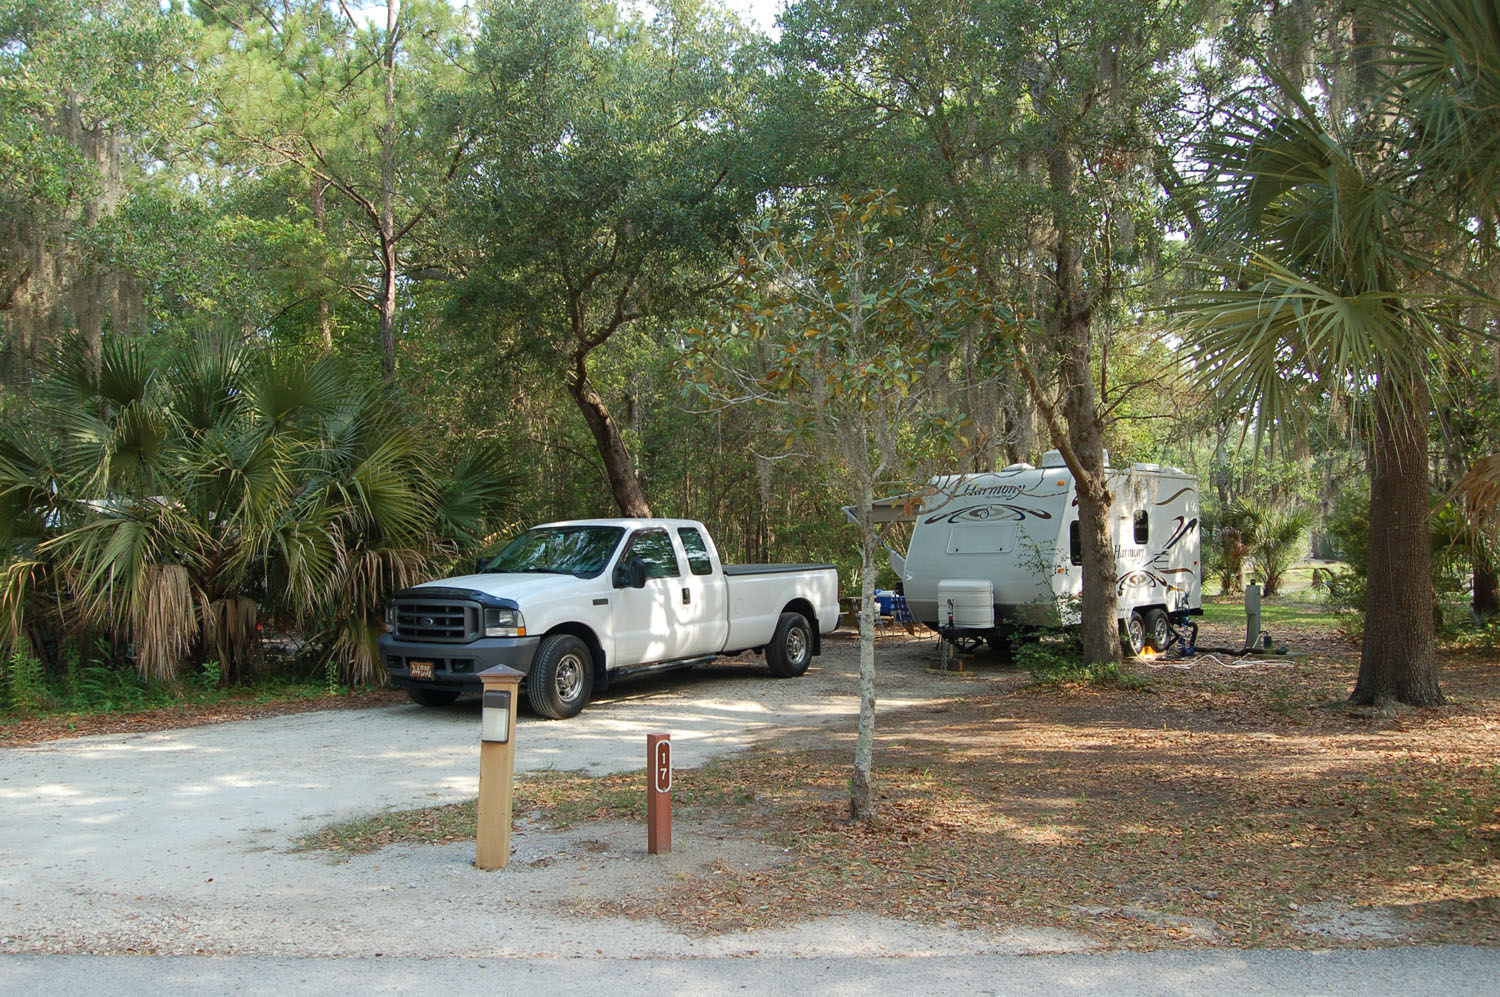 Image of campsite #17 at the Campground at James Island County Park